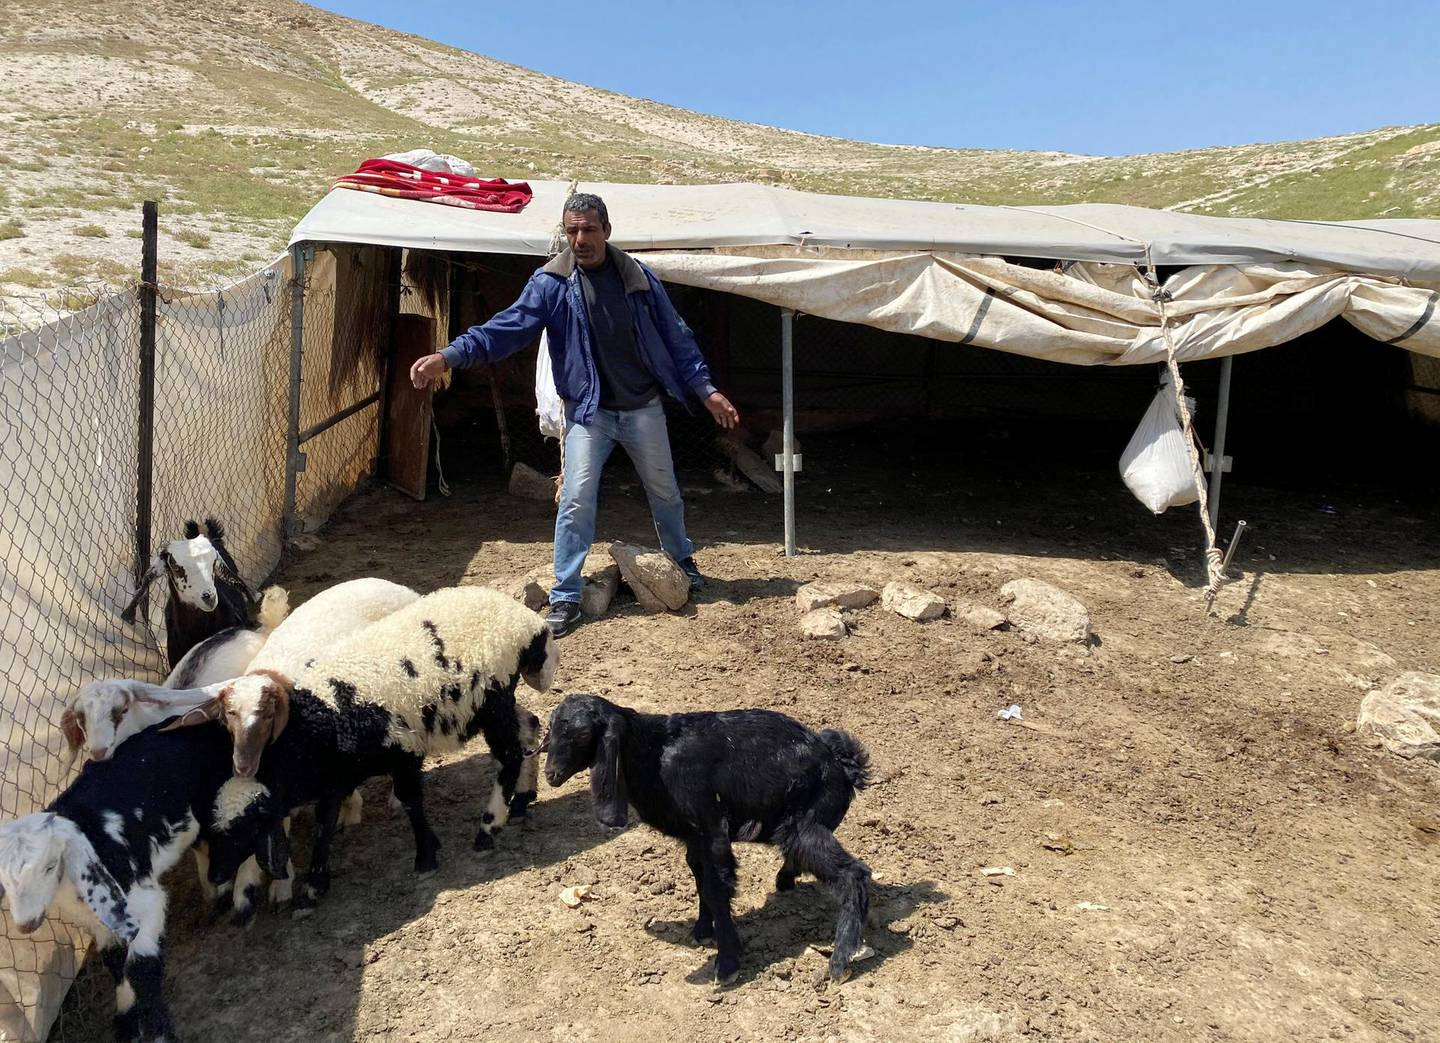 A Palestinian bedouin man looks after his sheep and goats amid concerns about the spread of the coronavirus disease (COVID-19) in al-Ubeidiya town near Bethlehem in the Israeli-occupied West Bank April 3, 2020. Picture taken April 3, 2020. REUTERS/Mustafa Ganeyeh